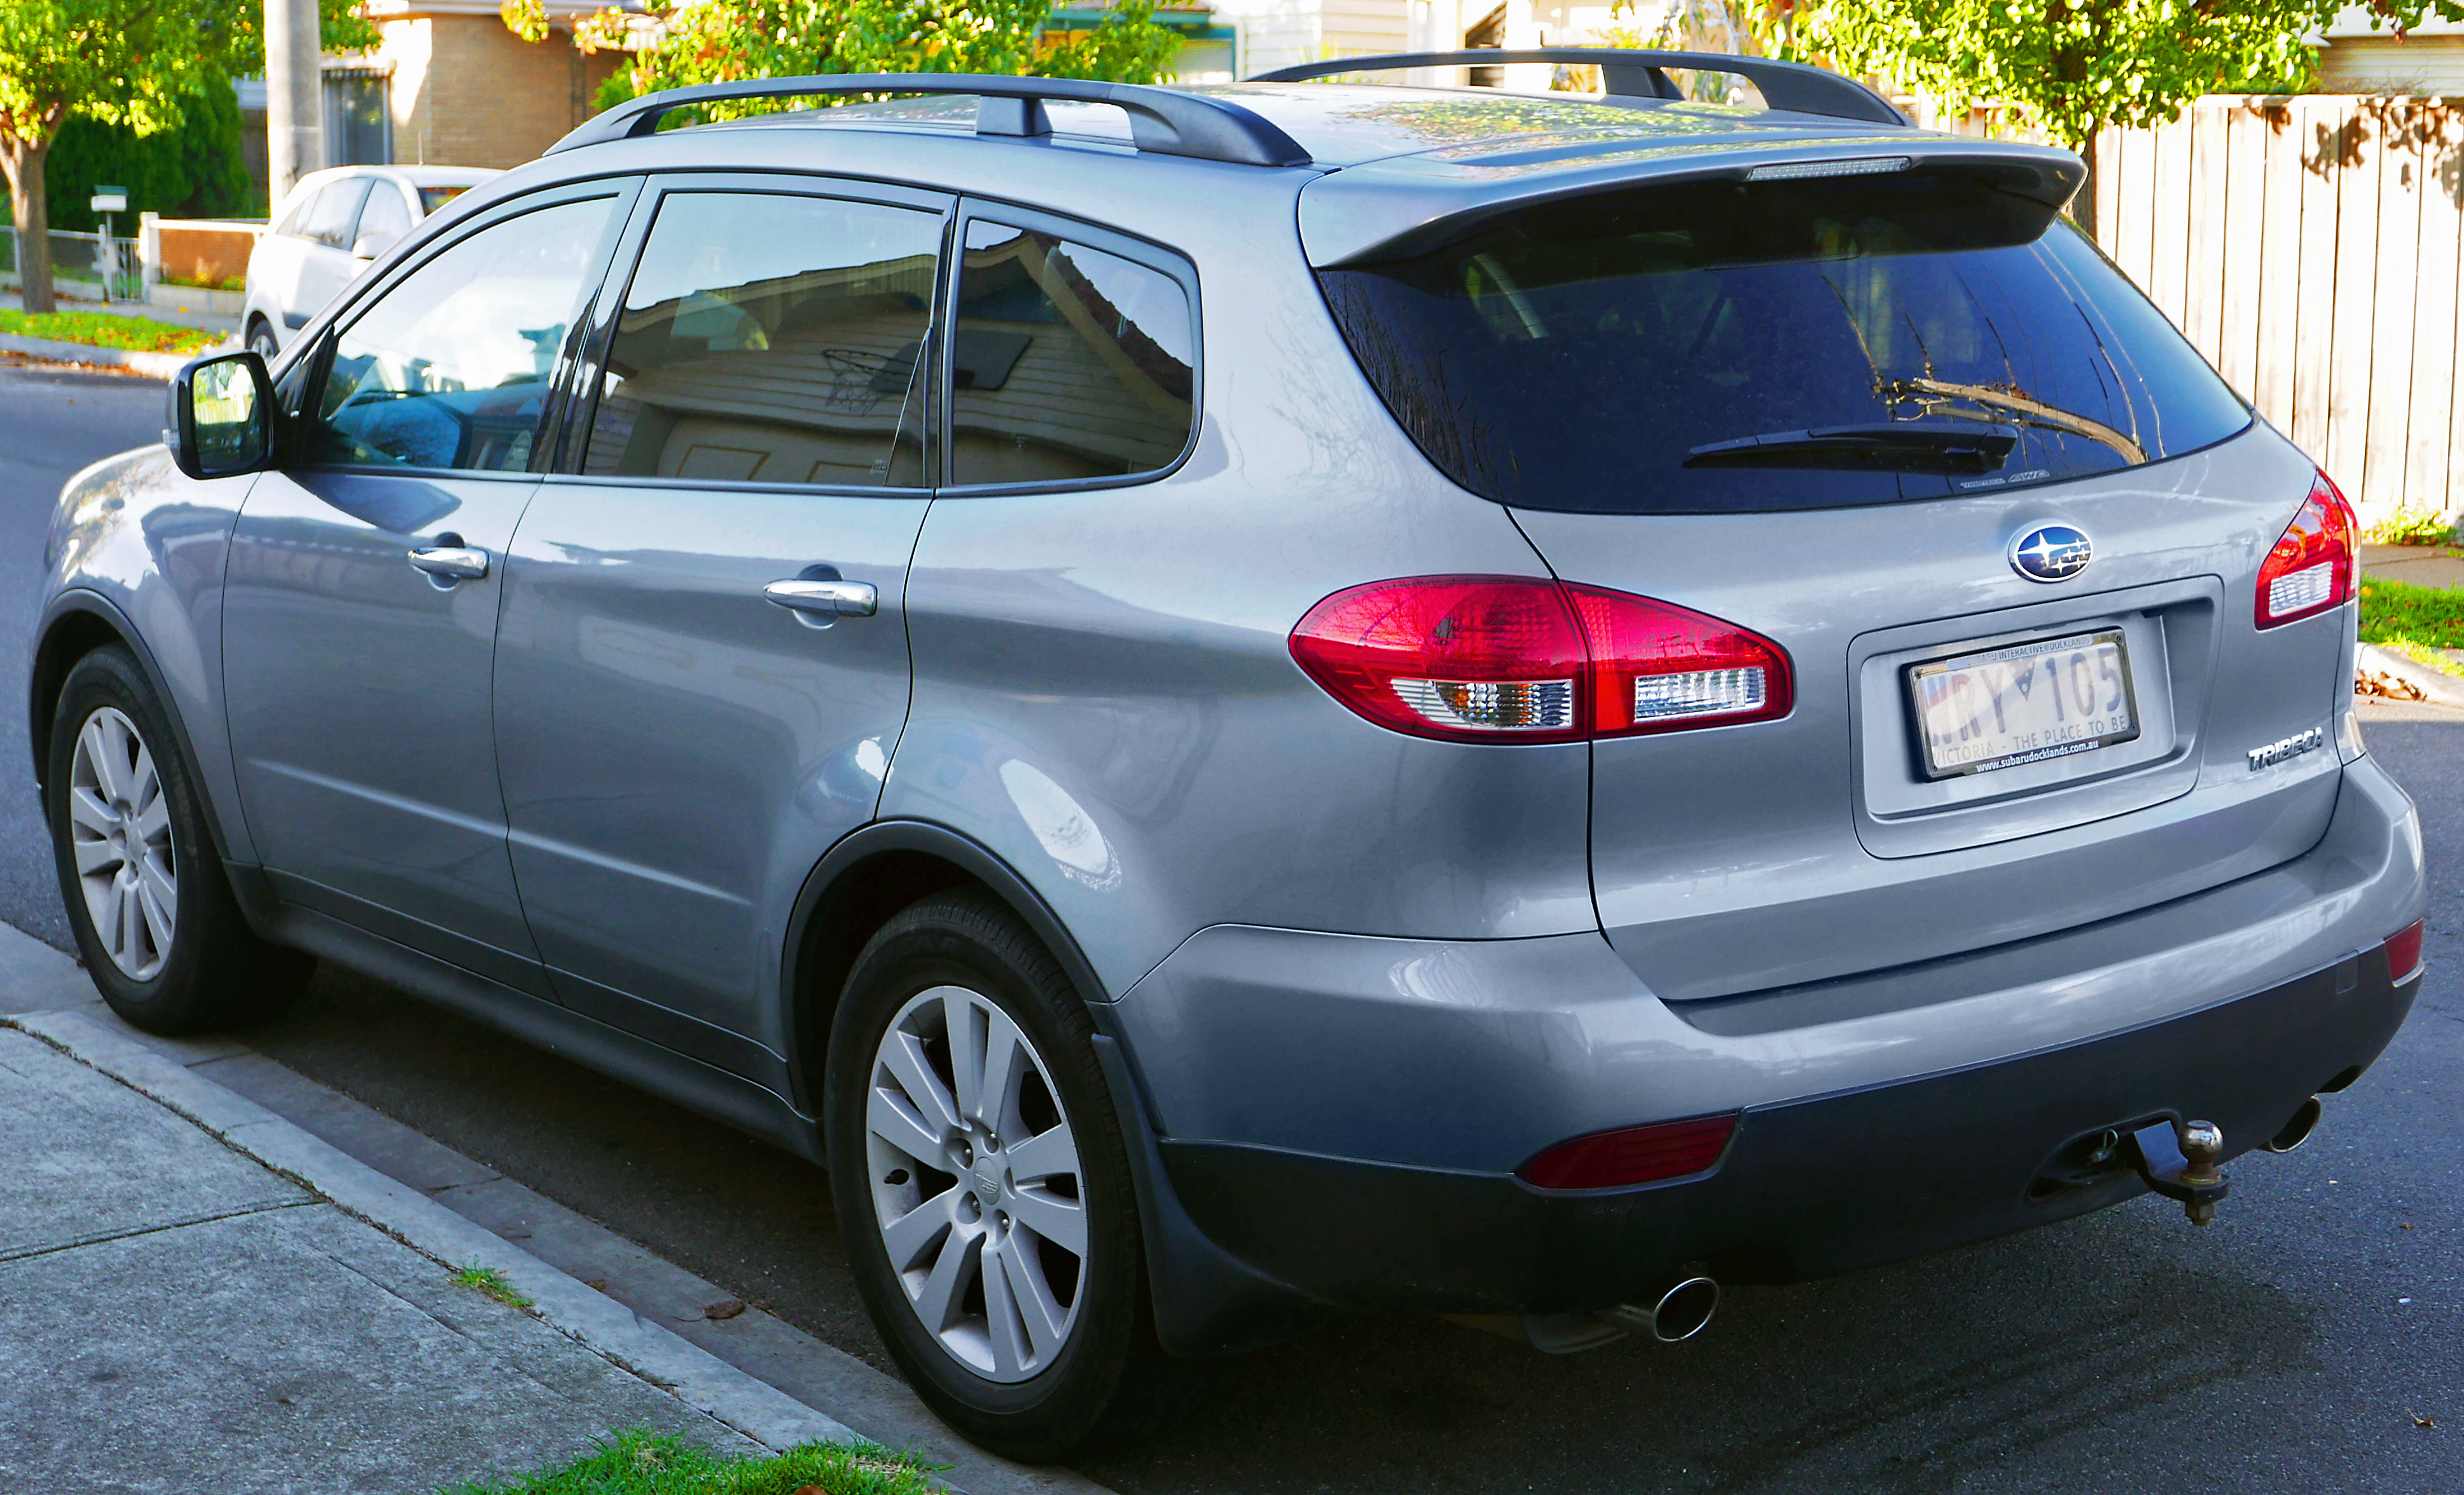 Service manual how does cars work 2007 subaru tribeca for Mercedes benz b9 service